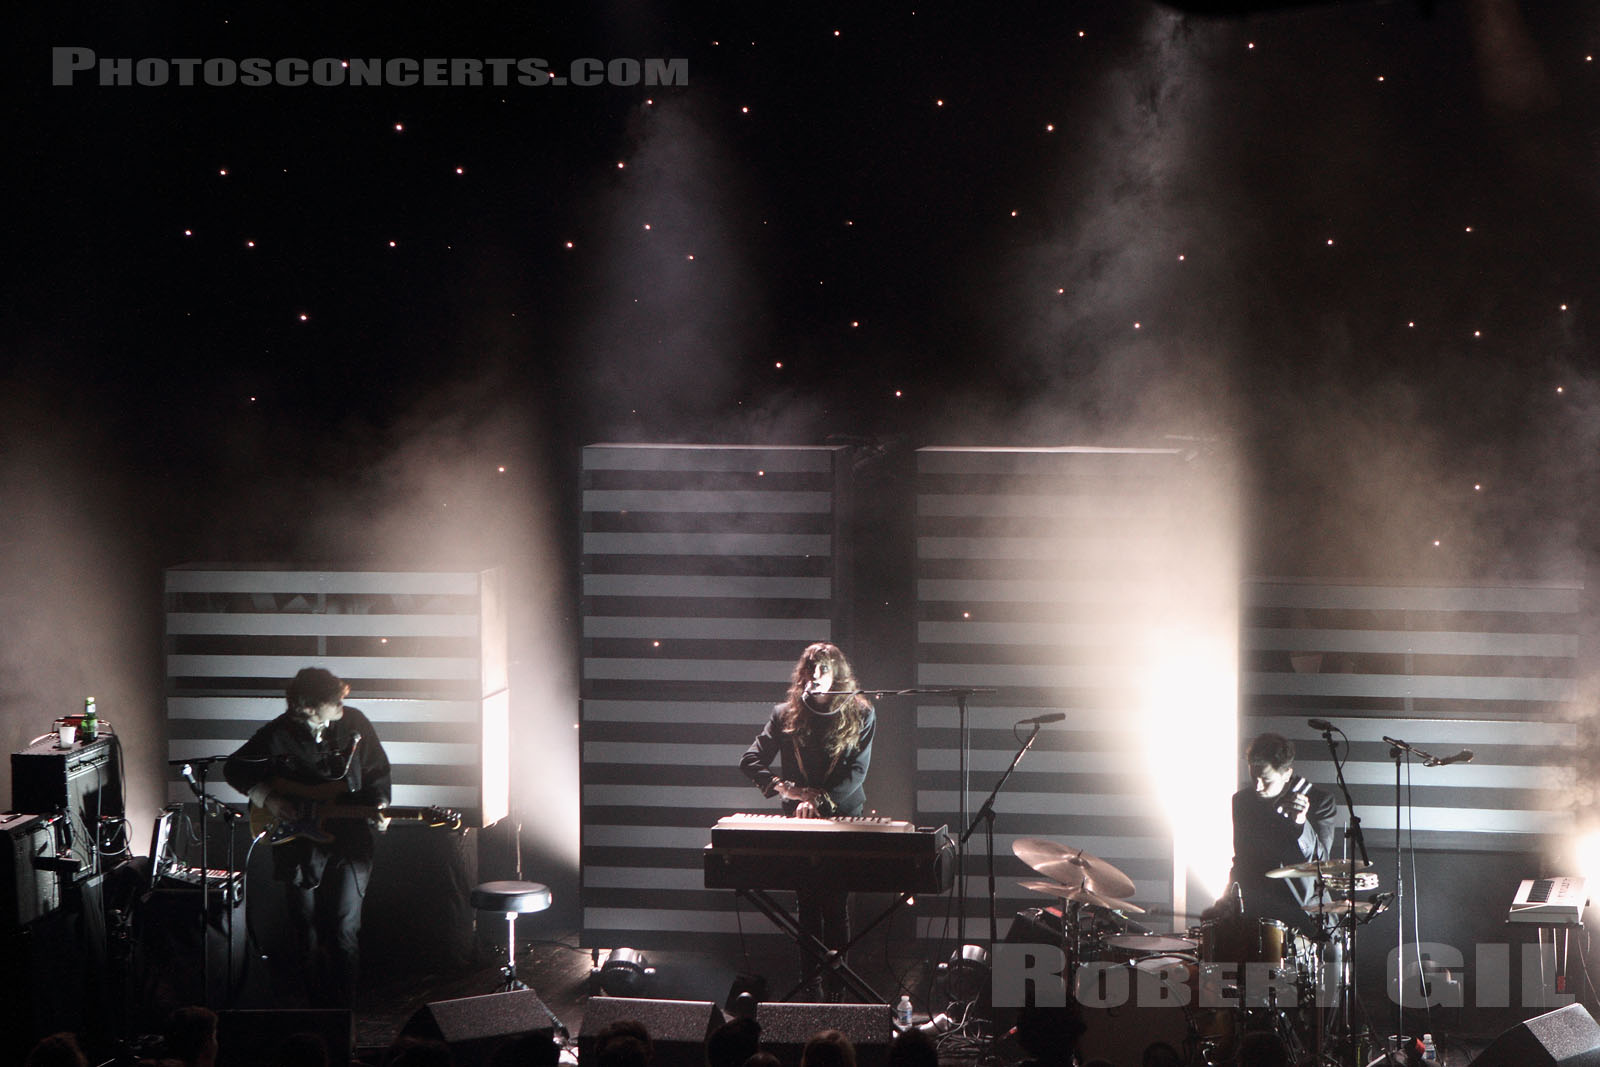 BEACH HOUSE - 2012-11-20 - PARIS - Le Trianon